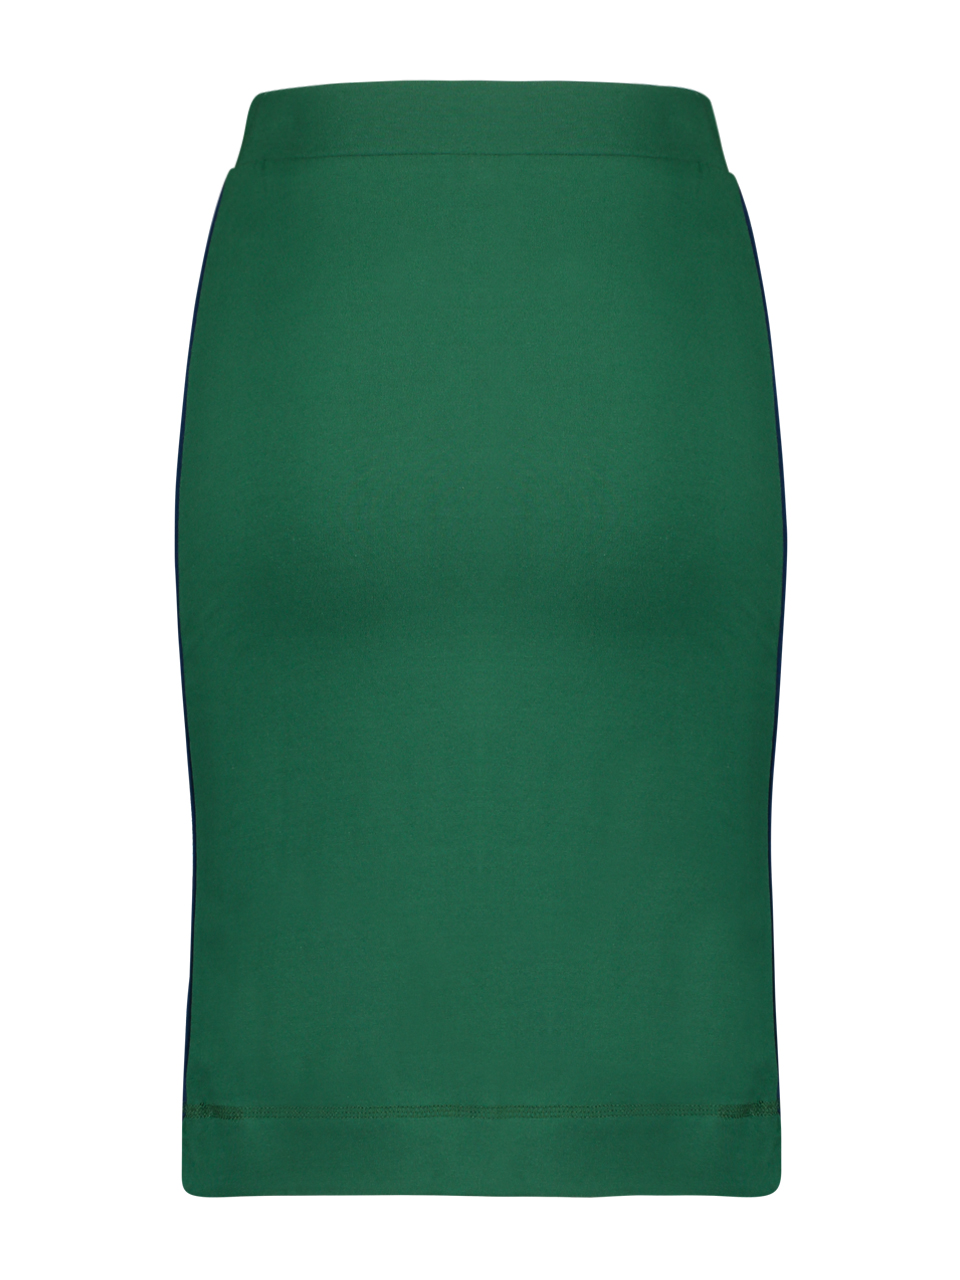 Skirt french knit - Green